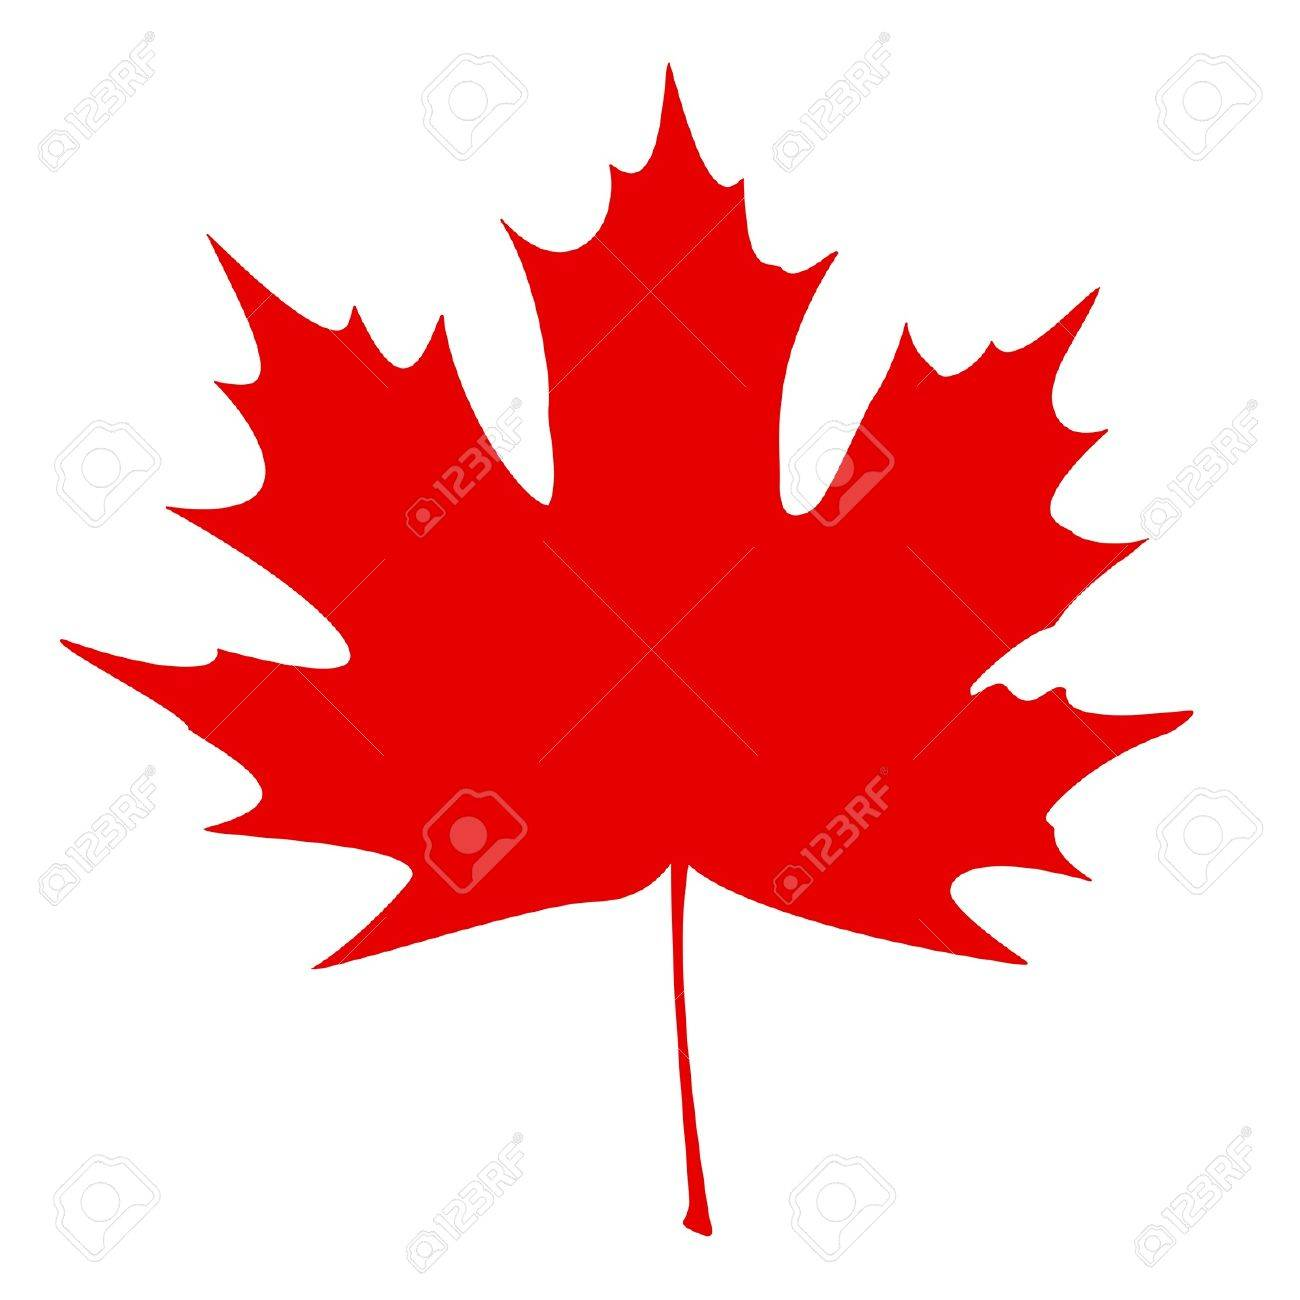 stylized canadian flag vector illustration royalty free cliparts rh 123rf com canada flag vector logo canada flag vector file